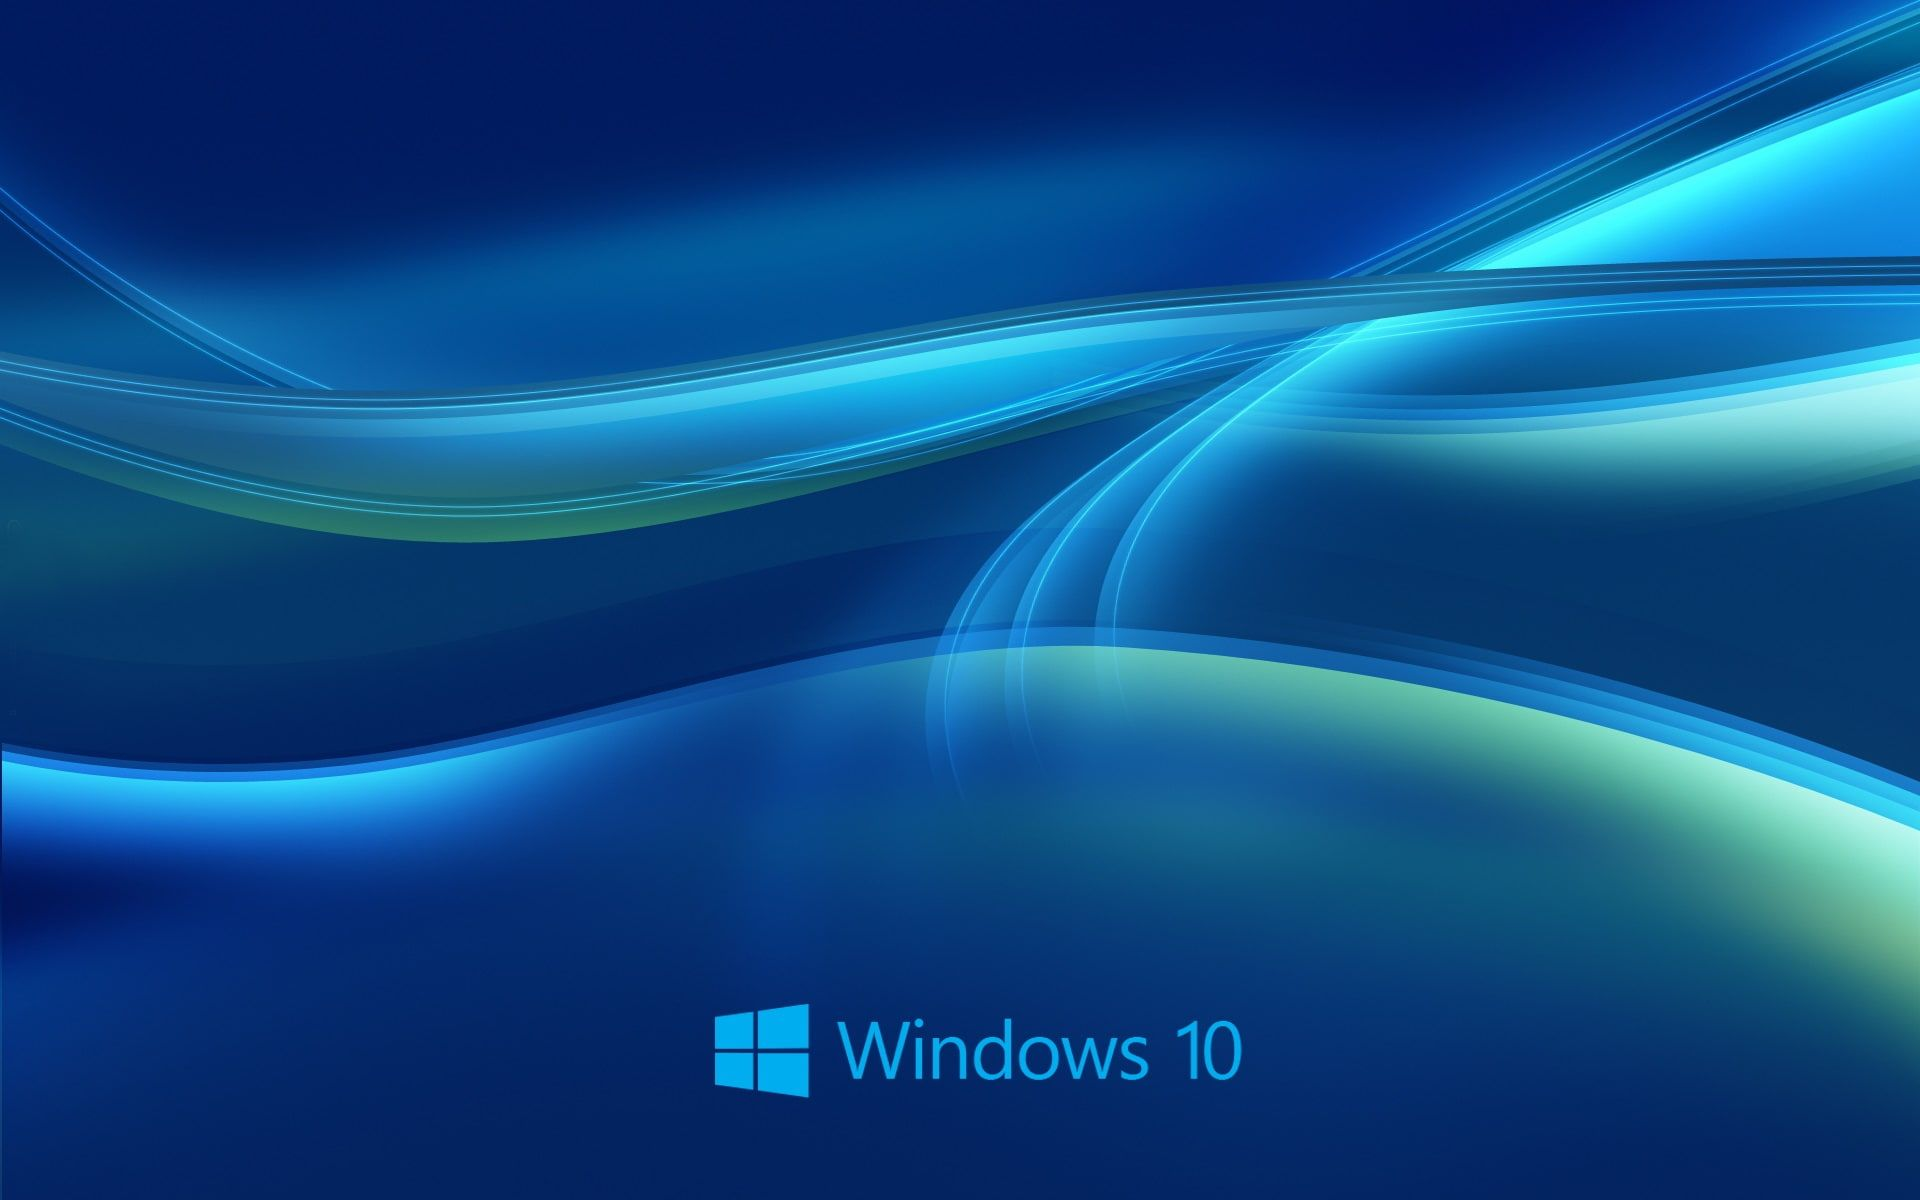 Windows 10 System Abstract Blue Background Windows 10 System Abstract Blue Background 1 Wallpaper Windows 10 Free Desktop Wallpaper Microsoft Wallpaper Desktop wallpaper for windows free